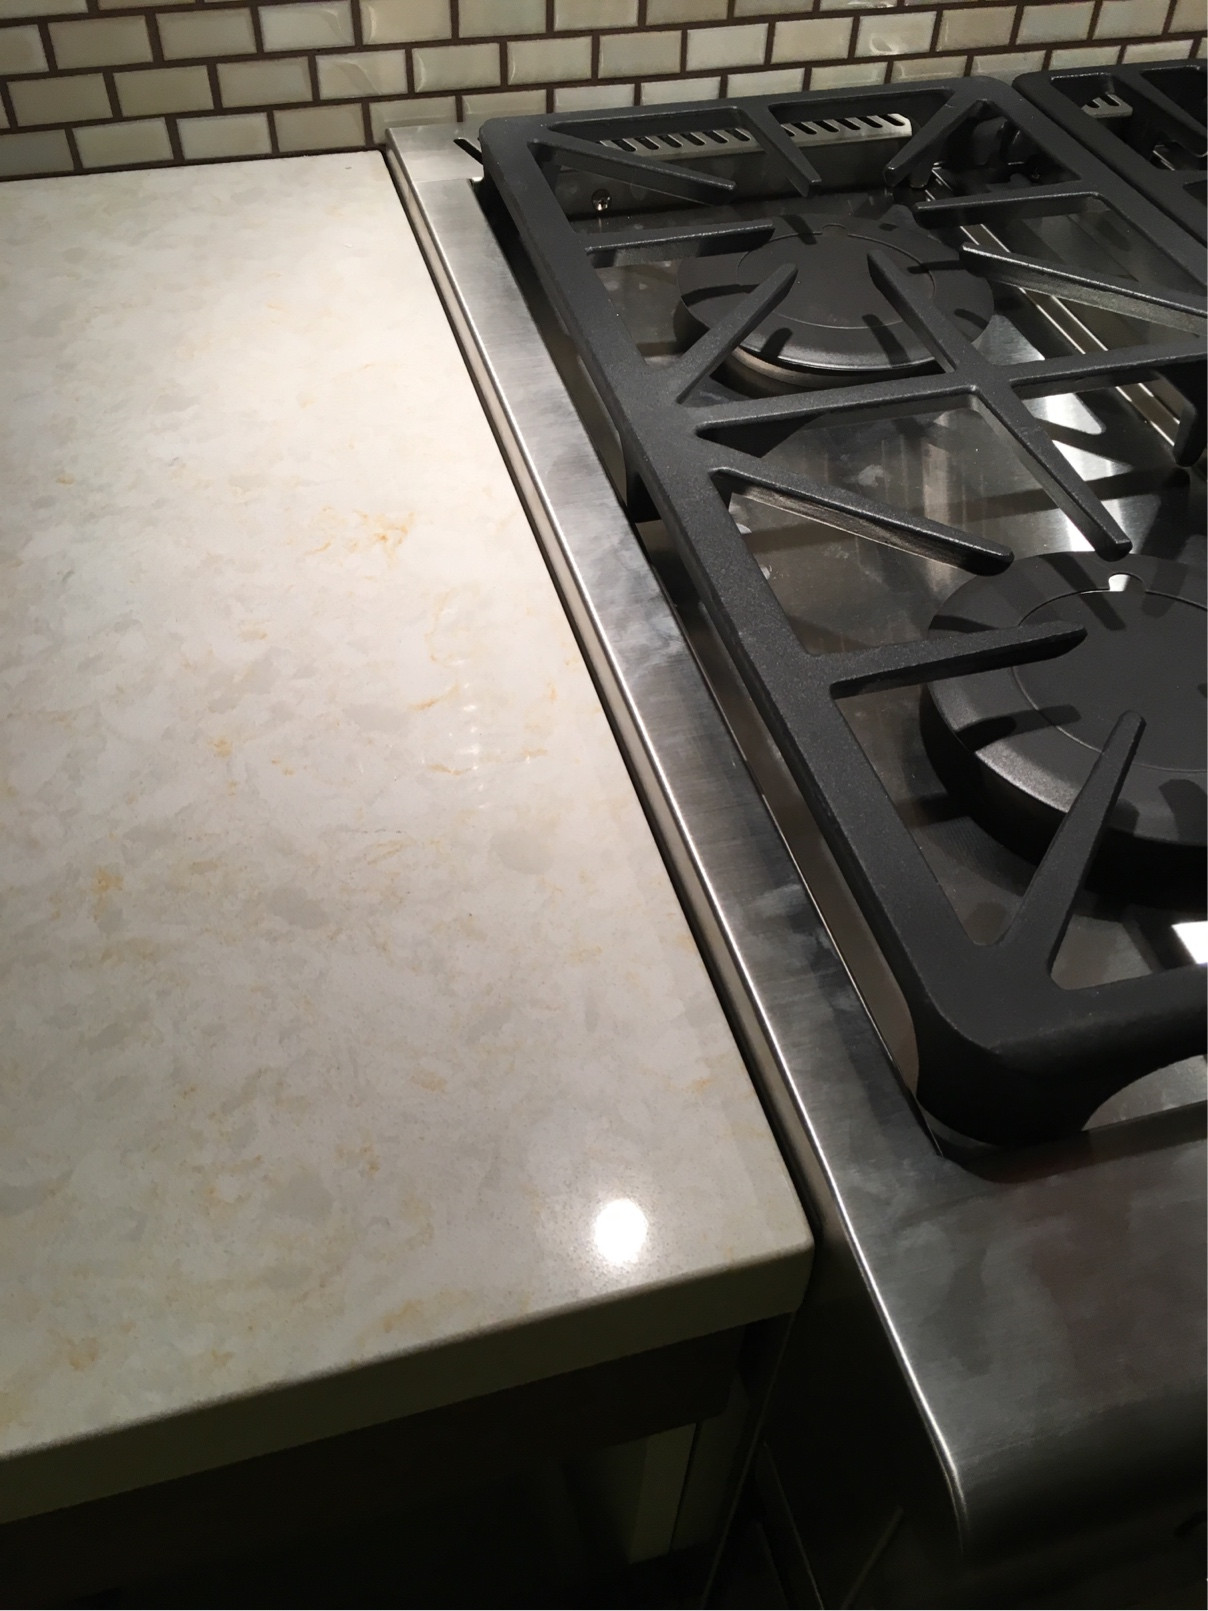 Gap Between Stove And Countertop Caulking Sealing Space Between Counter And Stainless